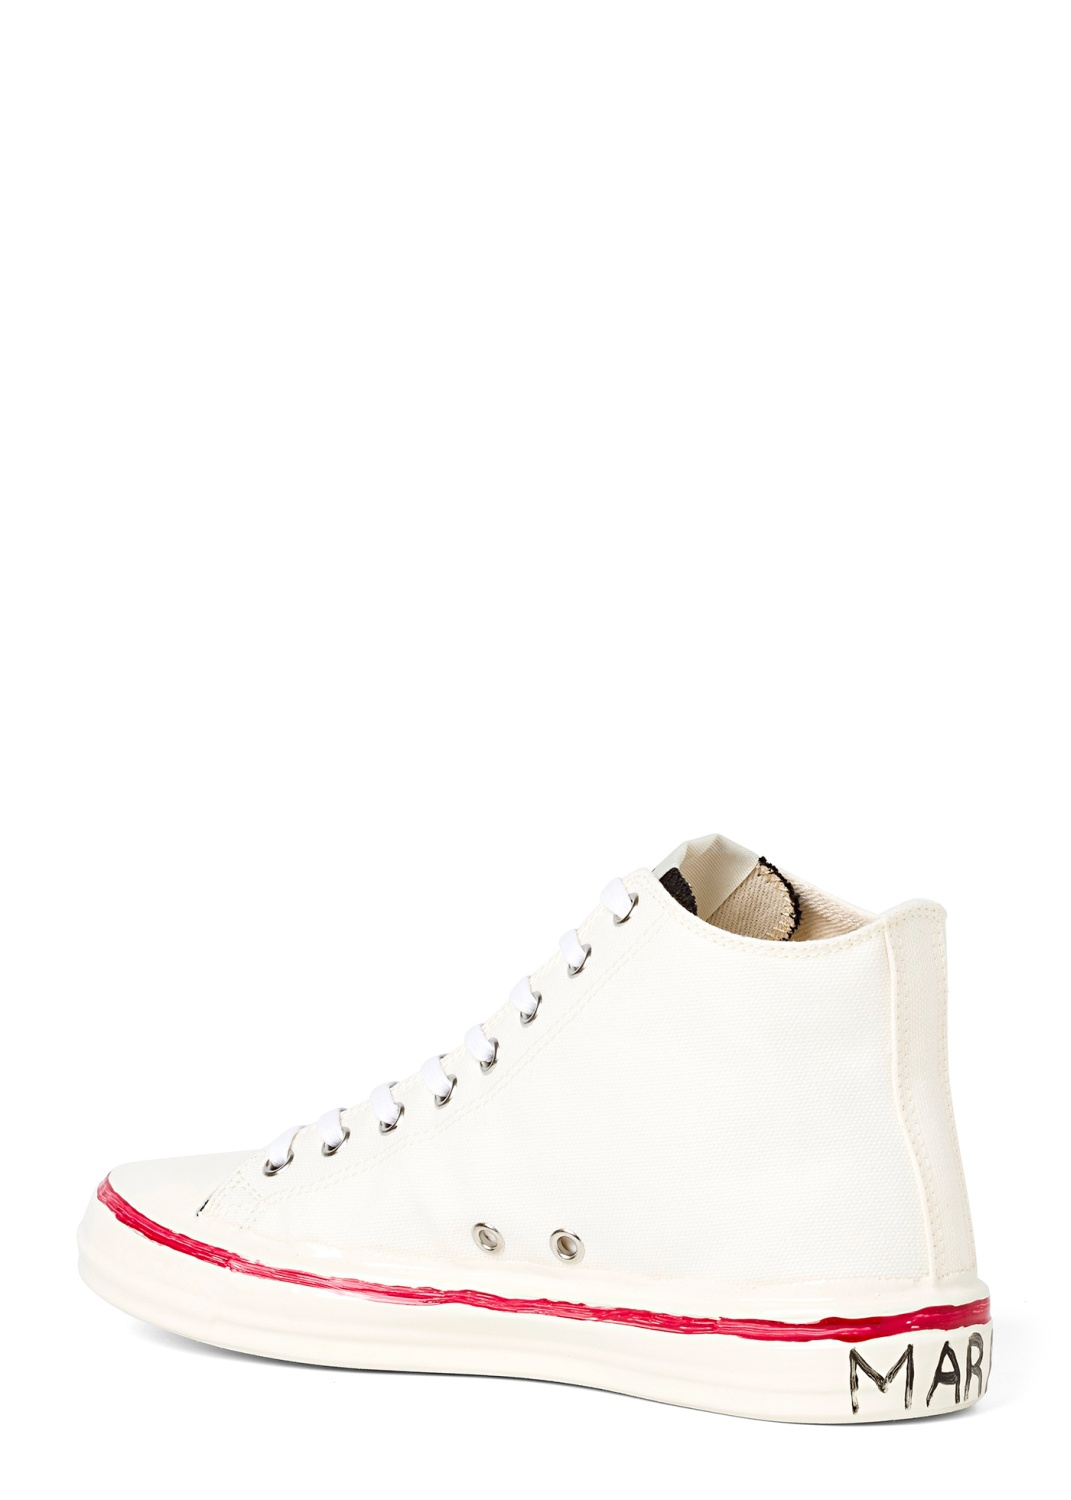 High top Sneaker Canvas image number 2